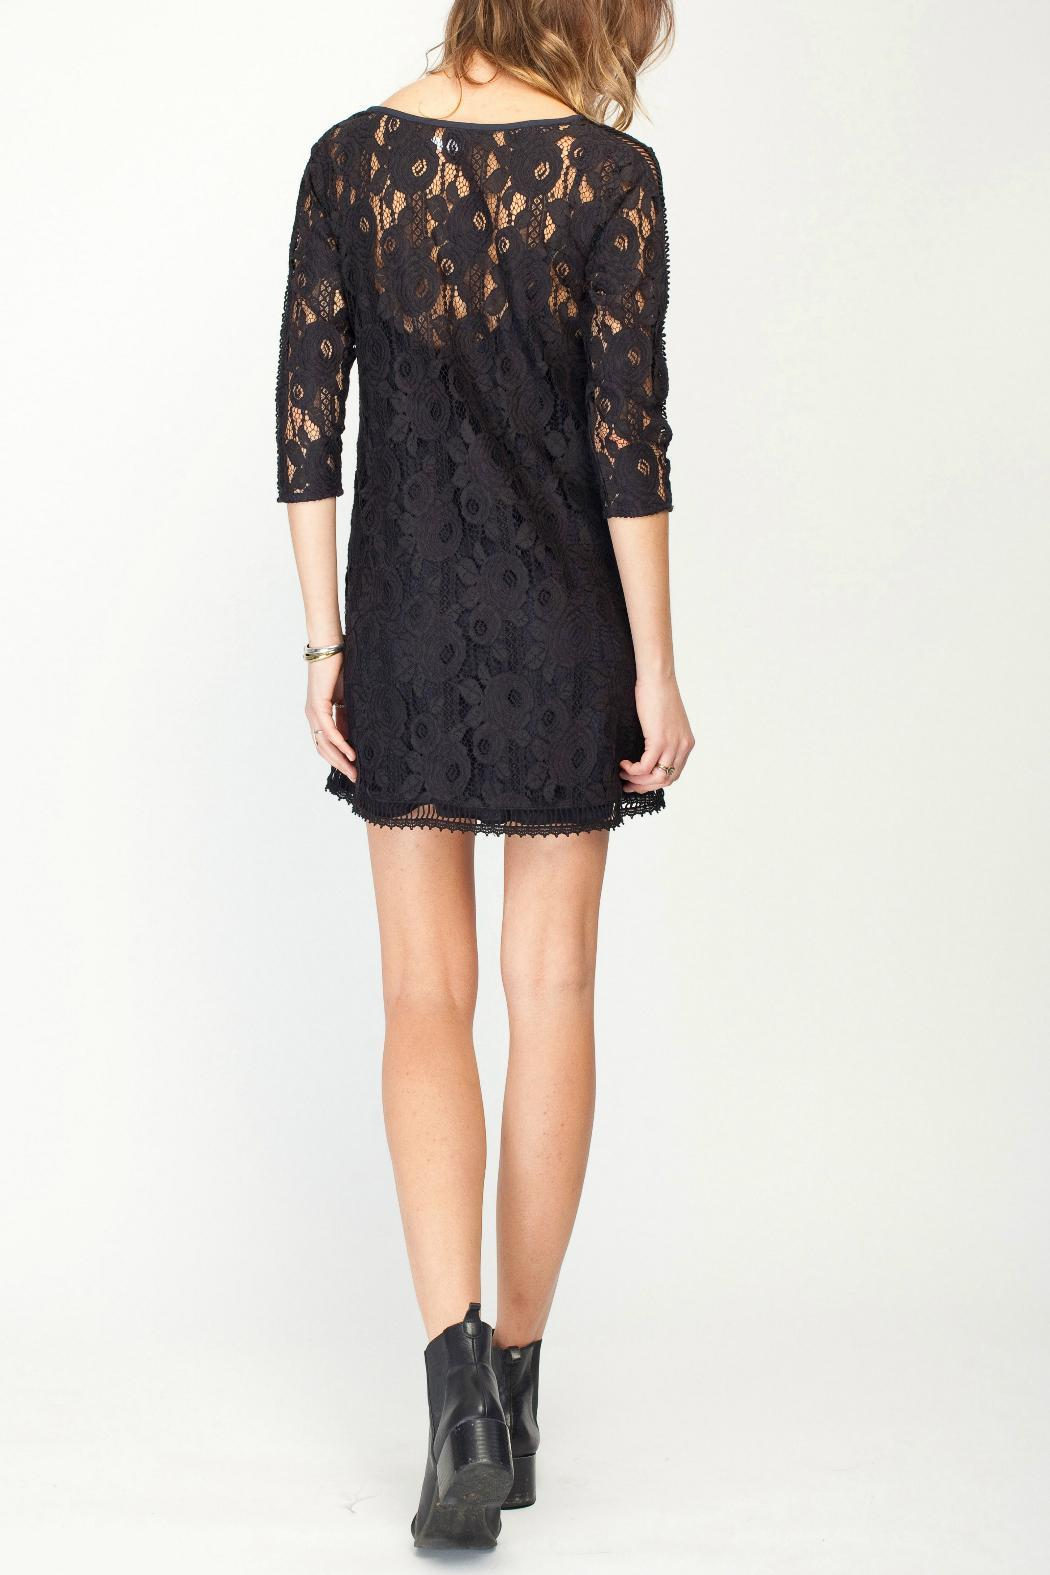 Gentle Fawn Lace Overlay Dress - Back Cropped Image